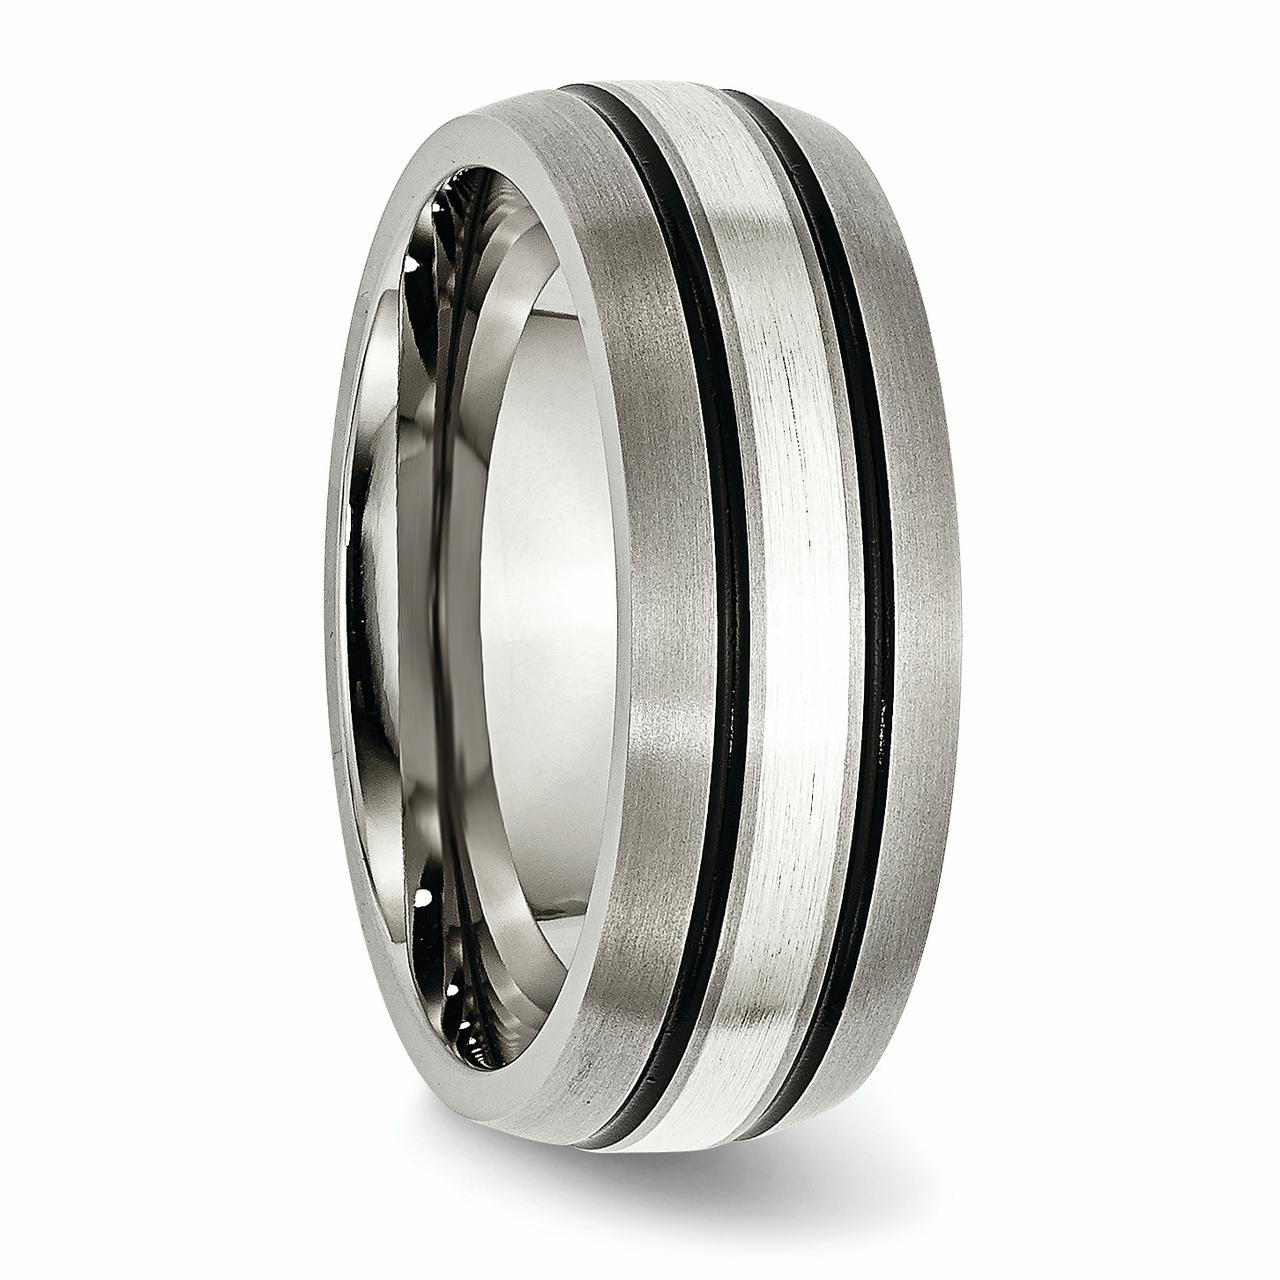 Titanium Grooved 925 Sterling Silver Inlay 8mm Brushed/ Wedding Ring Band Size 9.00 Precious Metal Fine Jewelry Gifts For Women For Her - image 4 de 6